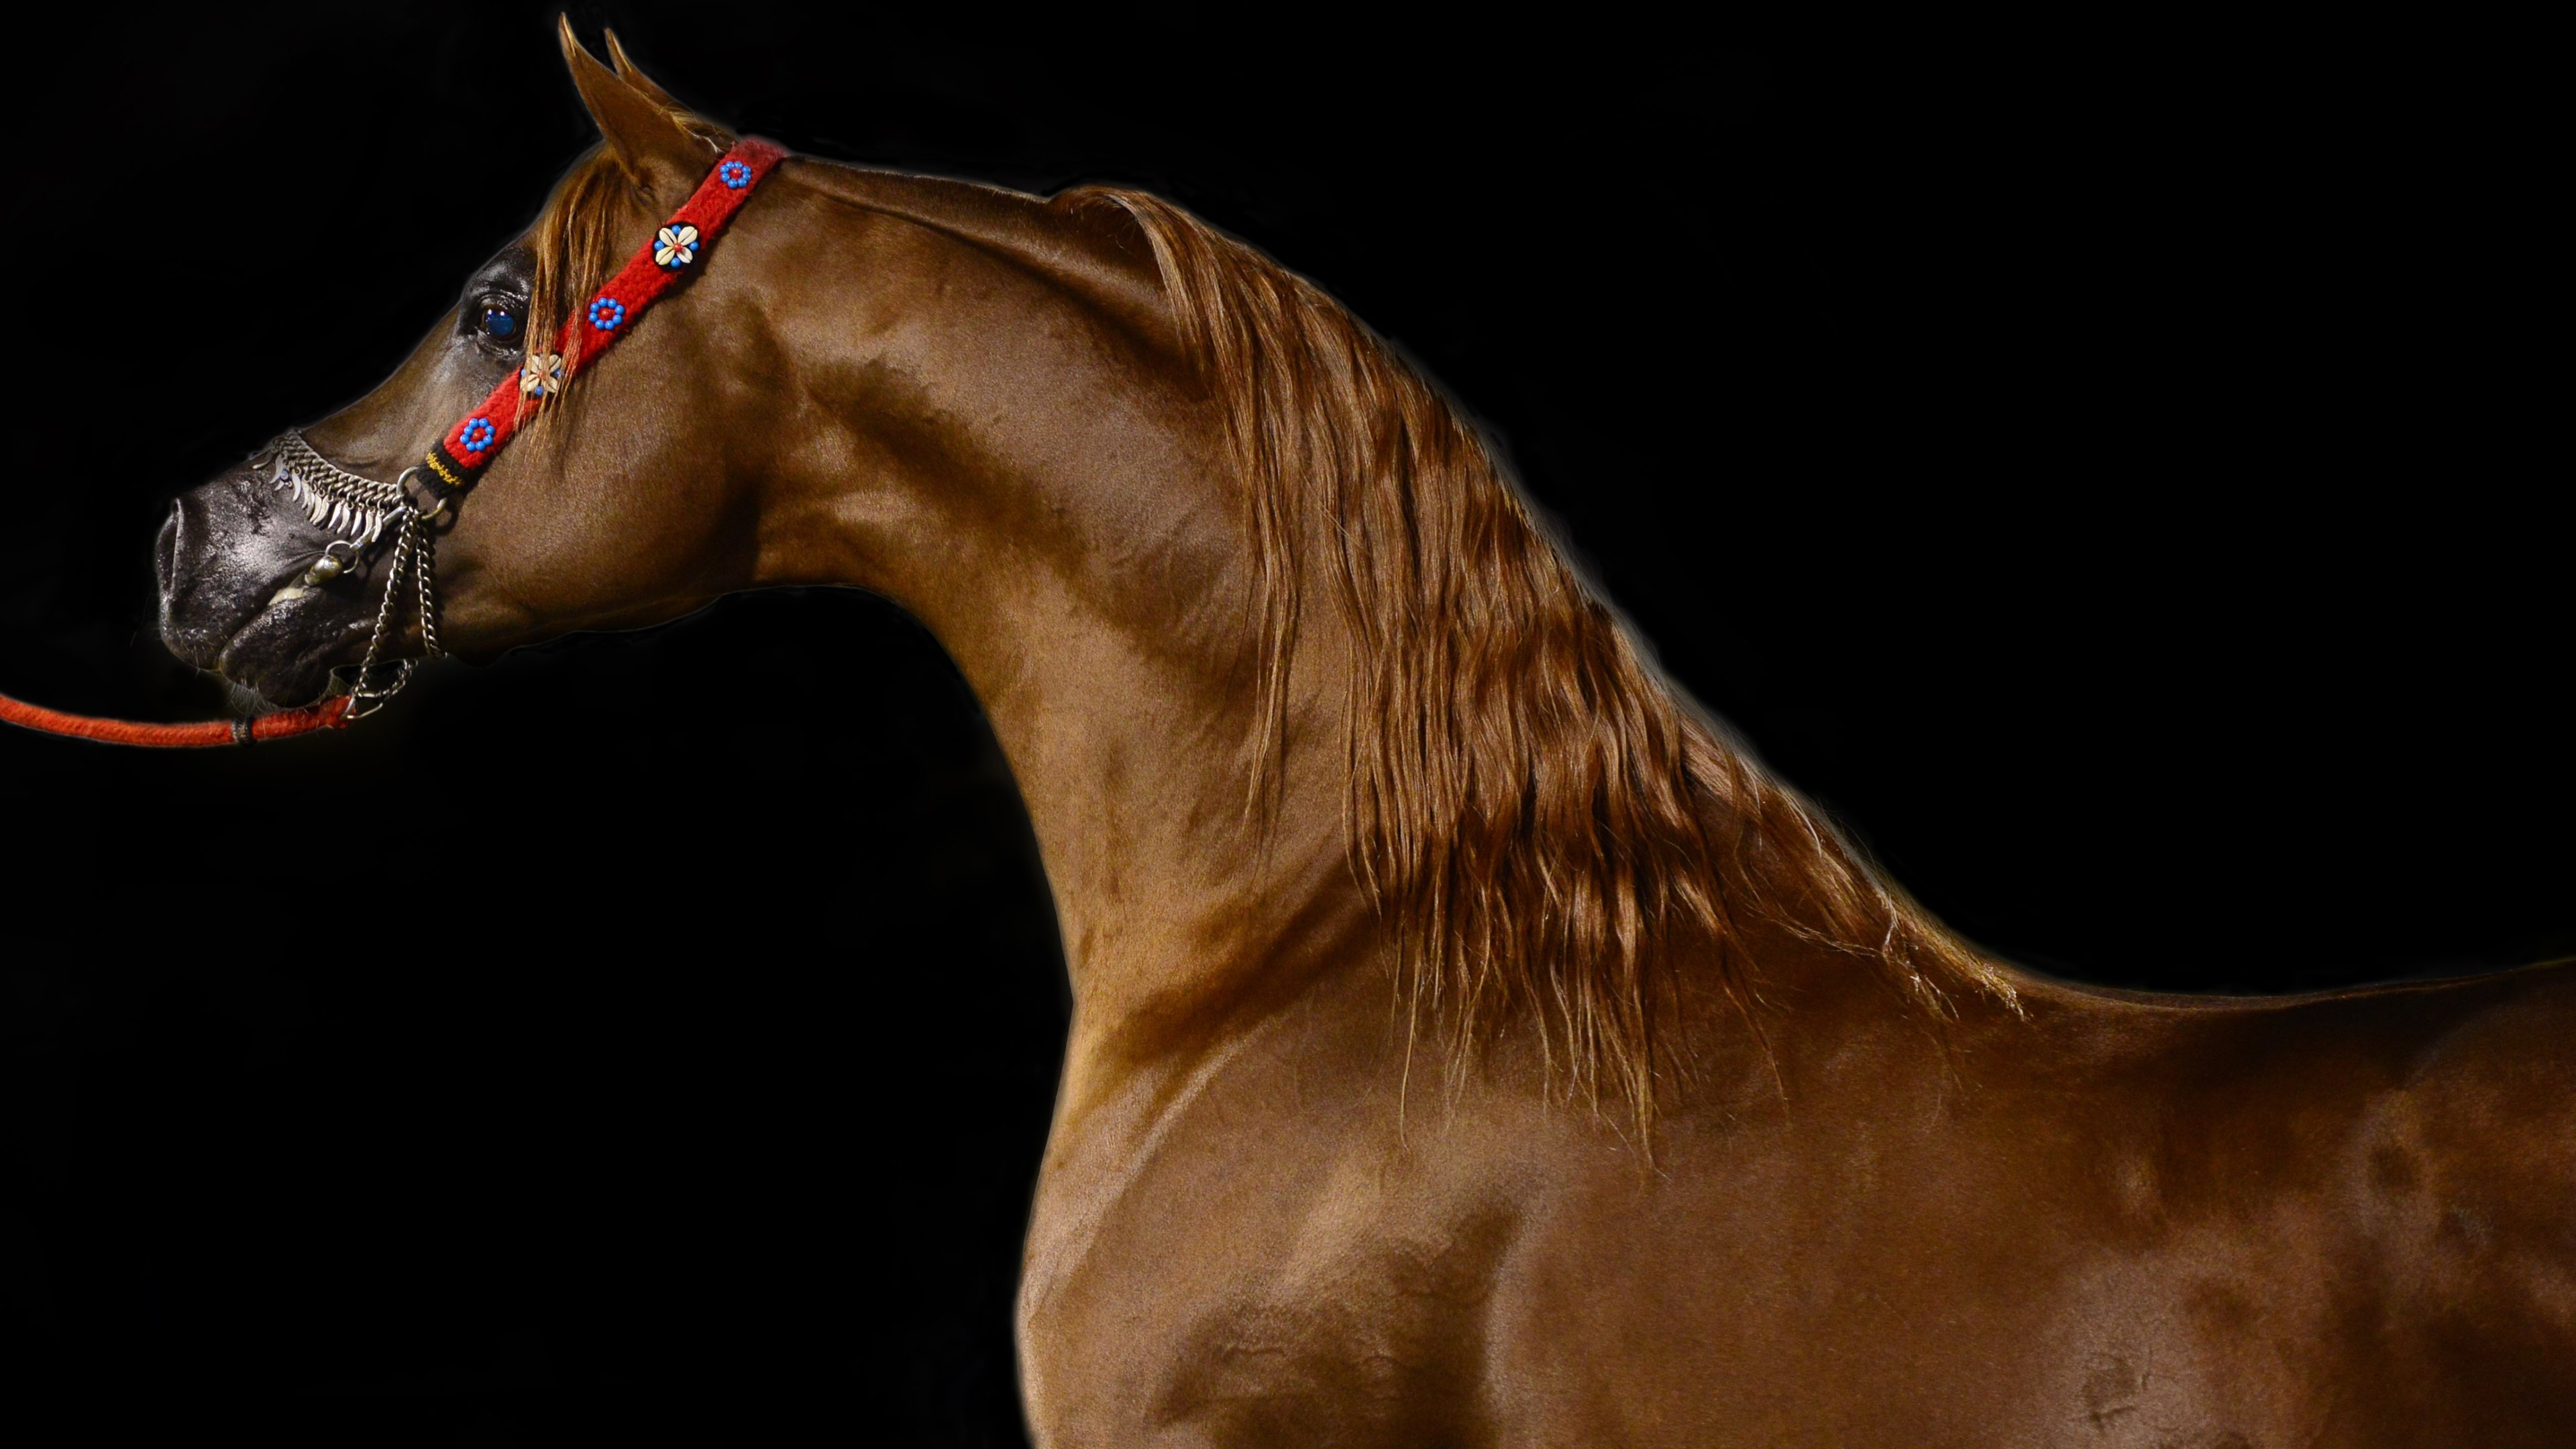 Arabian horse wallpapers pictures images arabian horse wallpaper thecheapjerseys Image collections